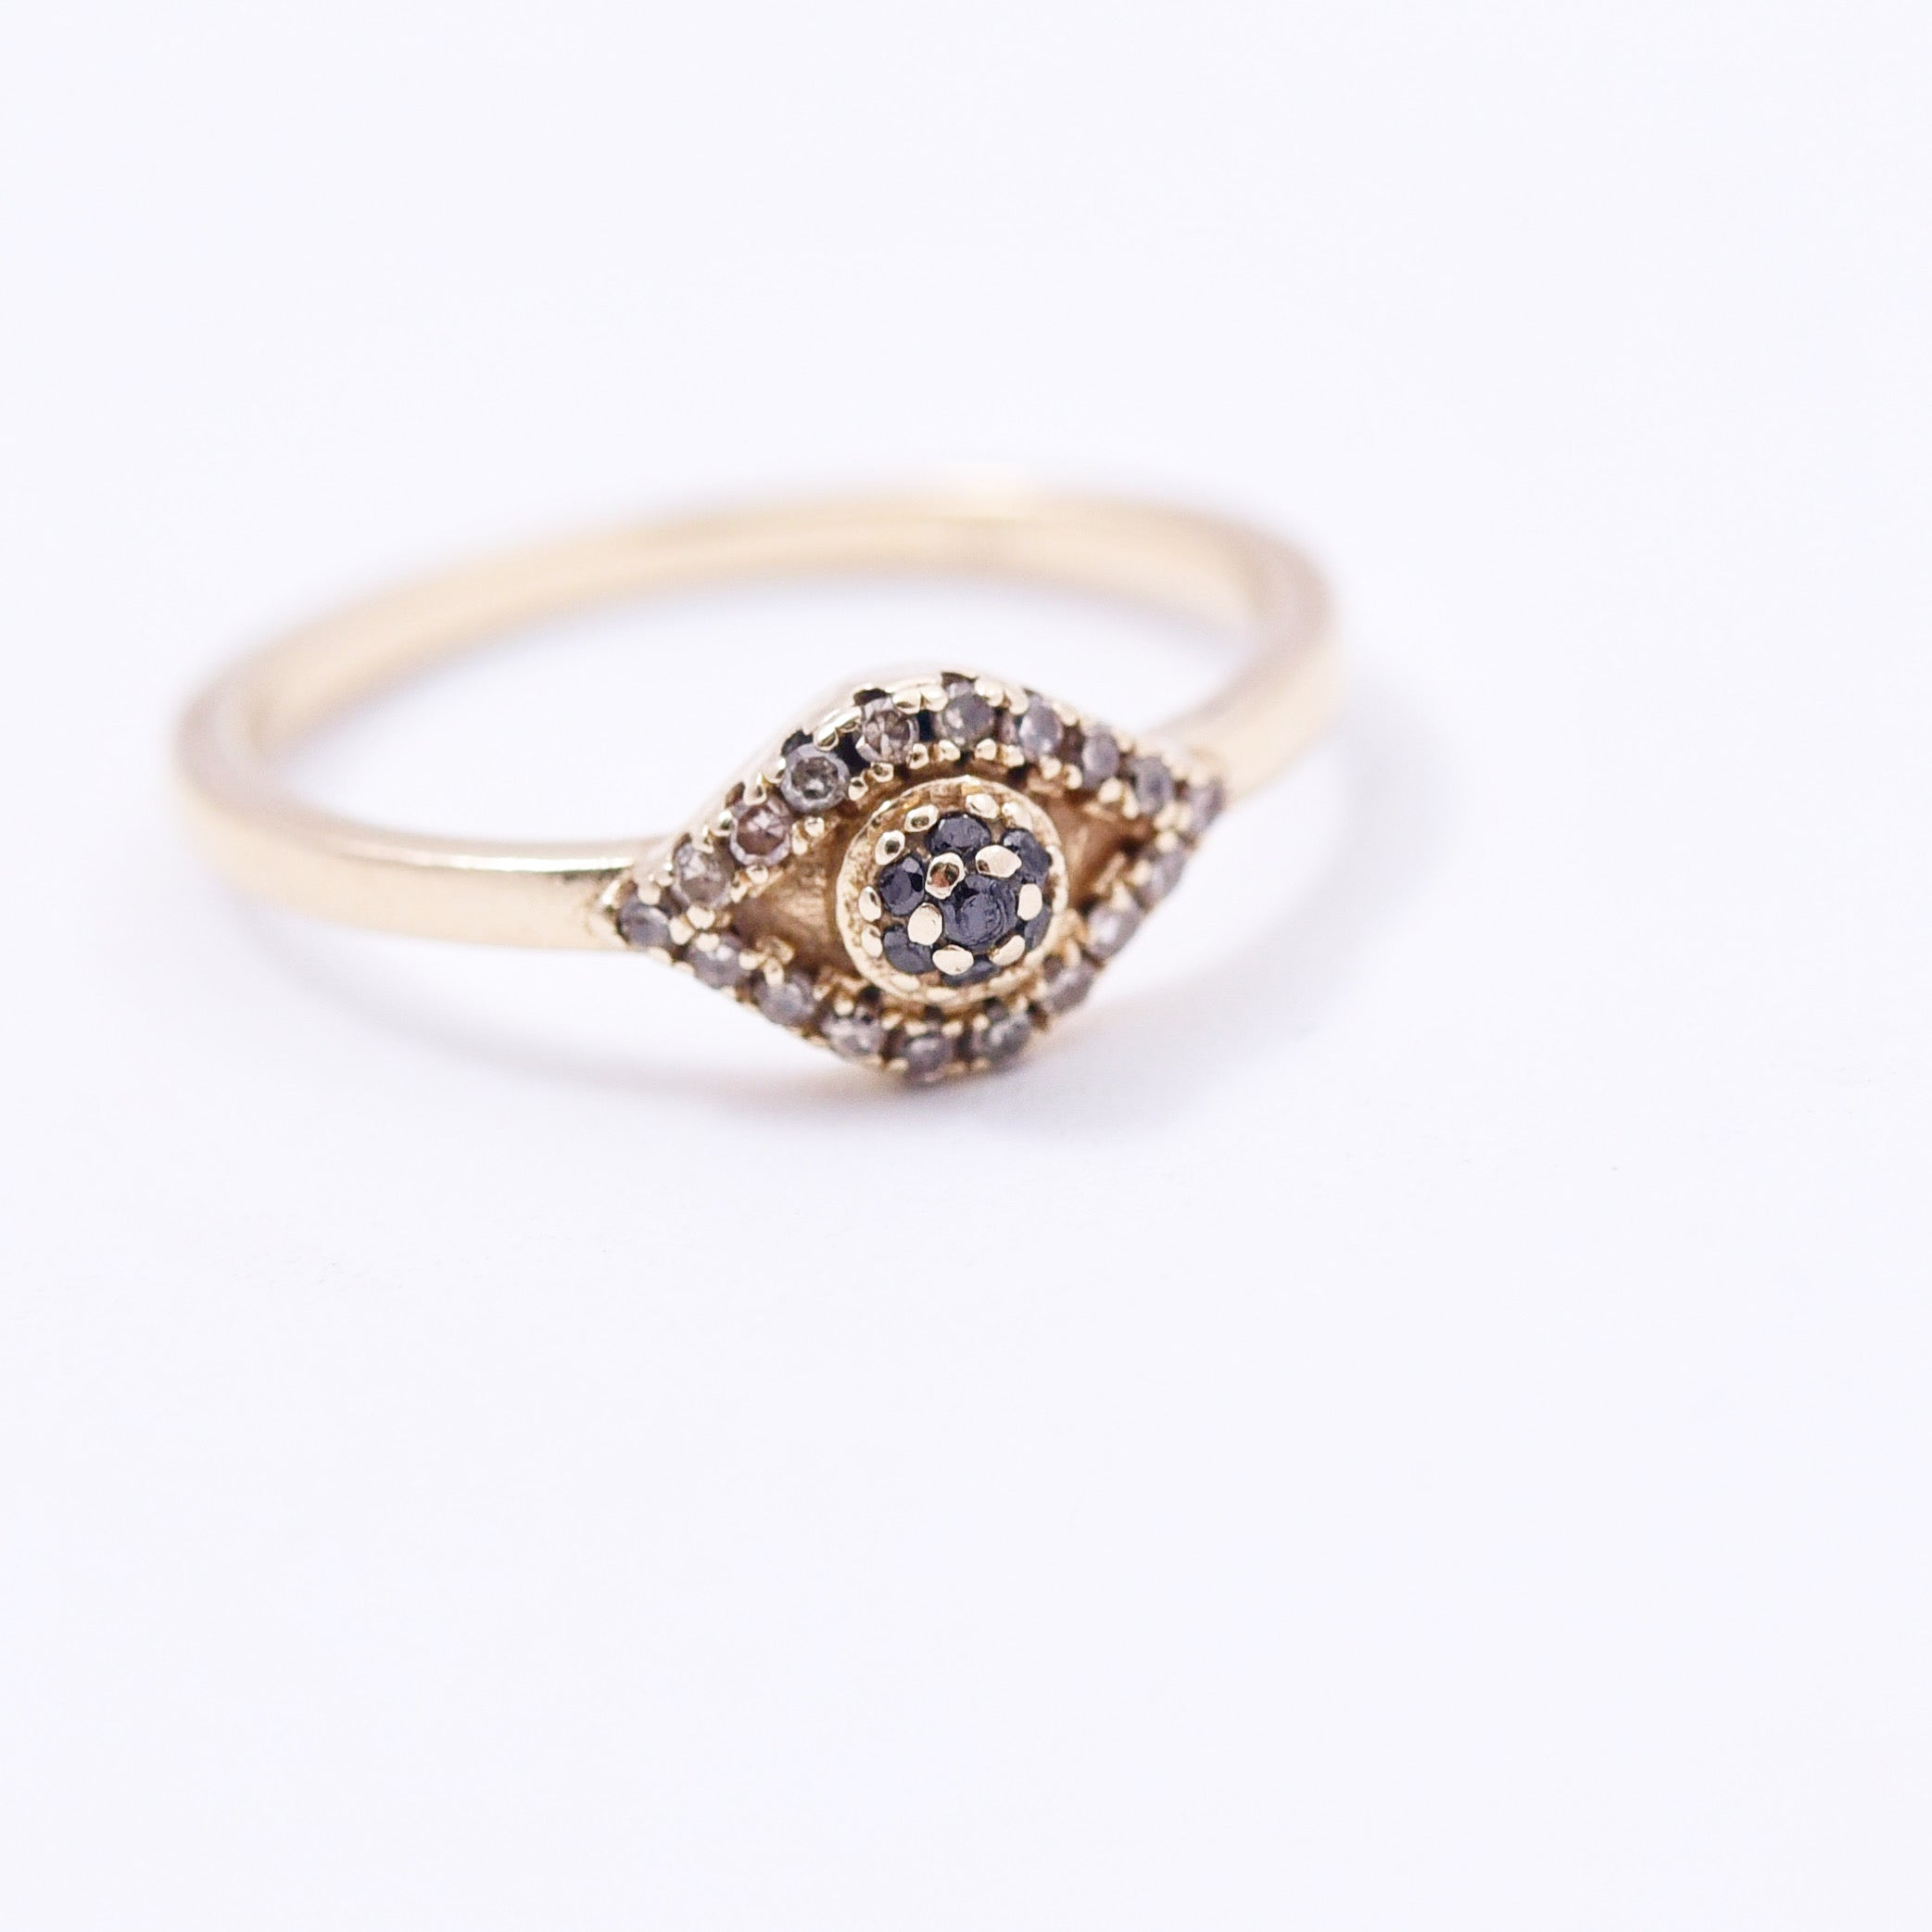 14K GOLD & DIAMOND EVIL EYE RING